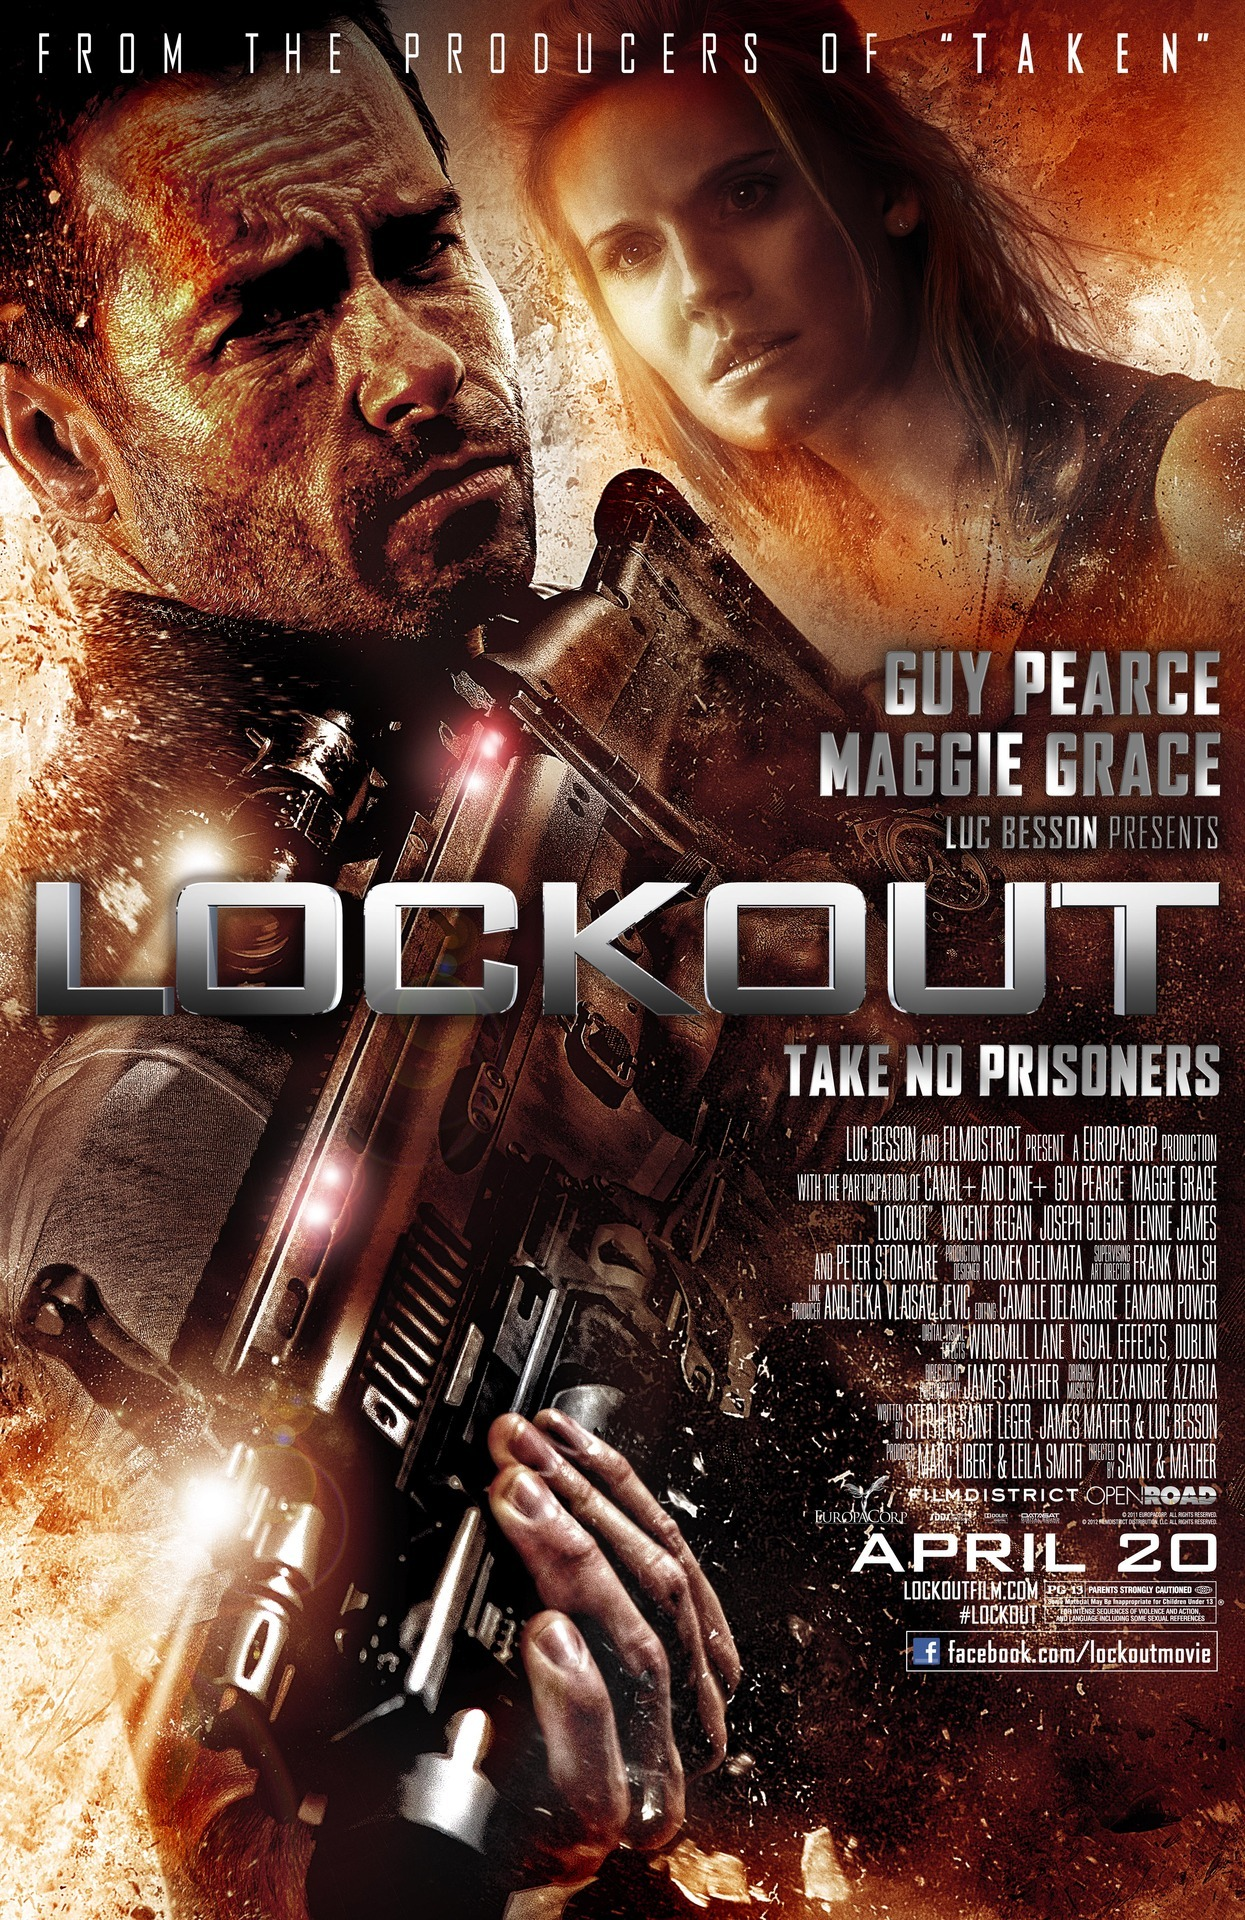 Lockout I missed this when it first came out in theatres, and didn't miss much. I think it has some good elements, but you can really just see them throwing all these things, like a wise-cracking anti-hero, and bantery relationship and crazy villians. It is sort of just the cut scenes from a video game.